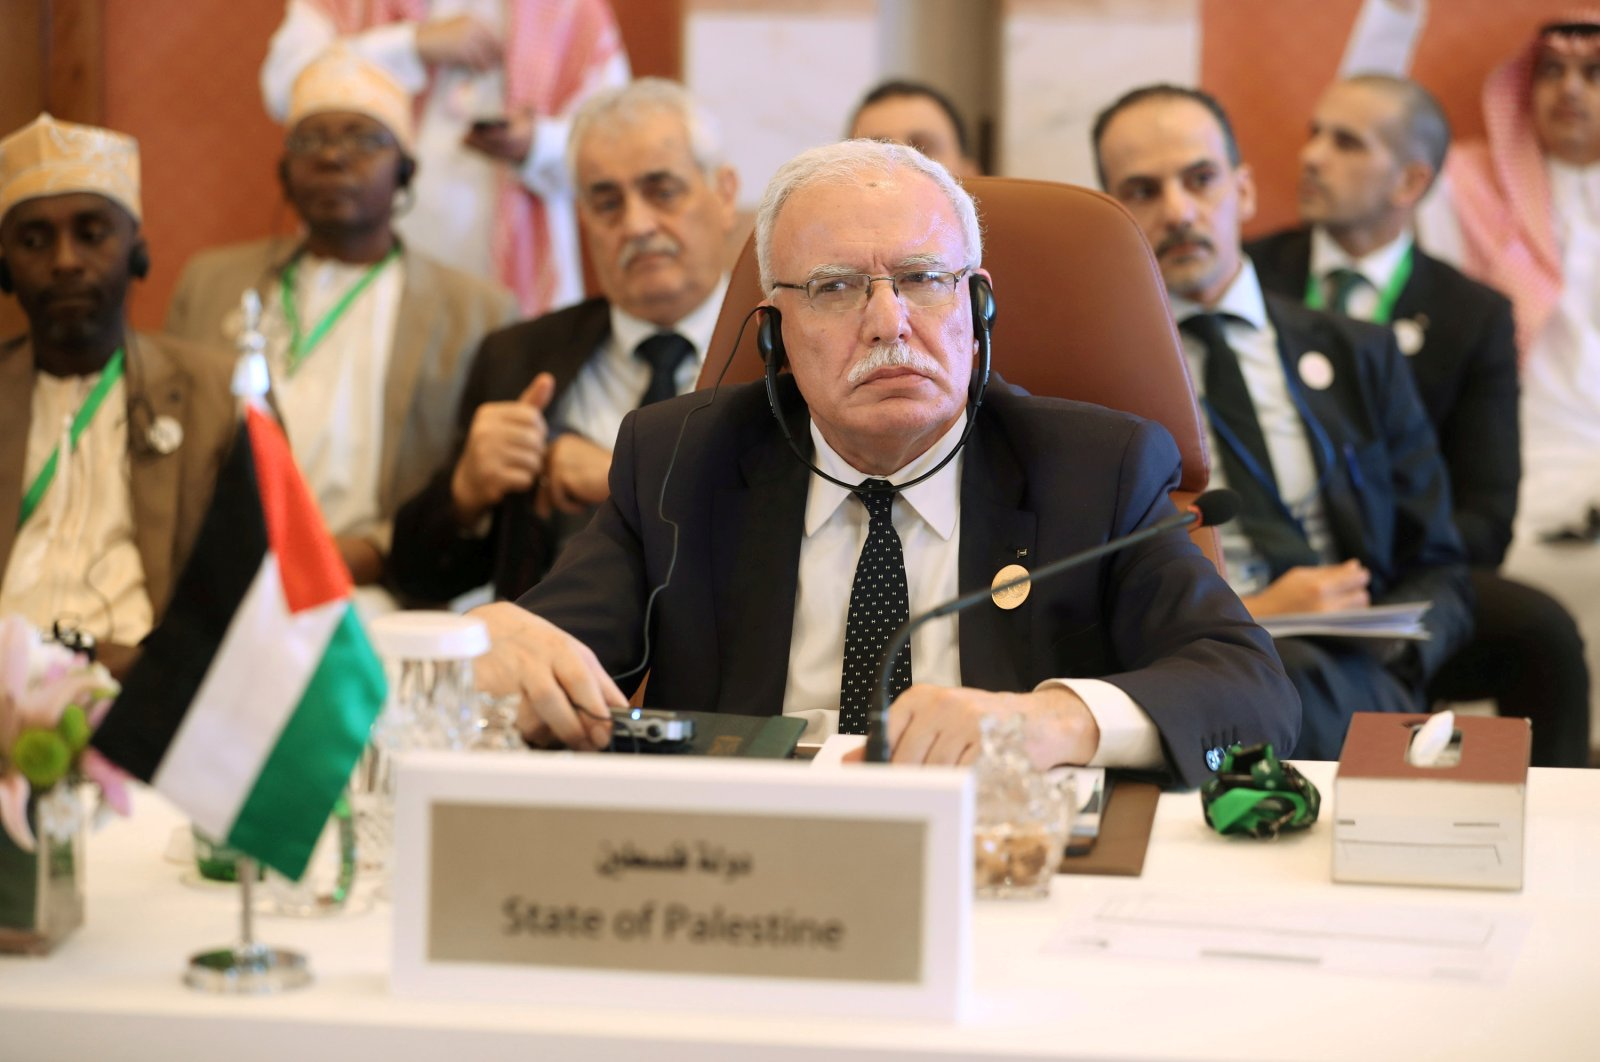 Palestinian Foreign Minister Riyad al-Maliki is seen during a preparatory meeting for the Gulf Cooperation Council (GCC),  Jeddah, May 29, 2019. (REUTERS Photo)